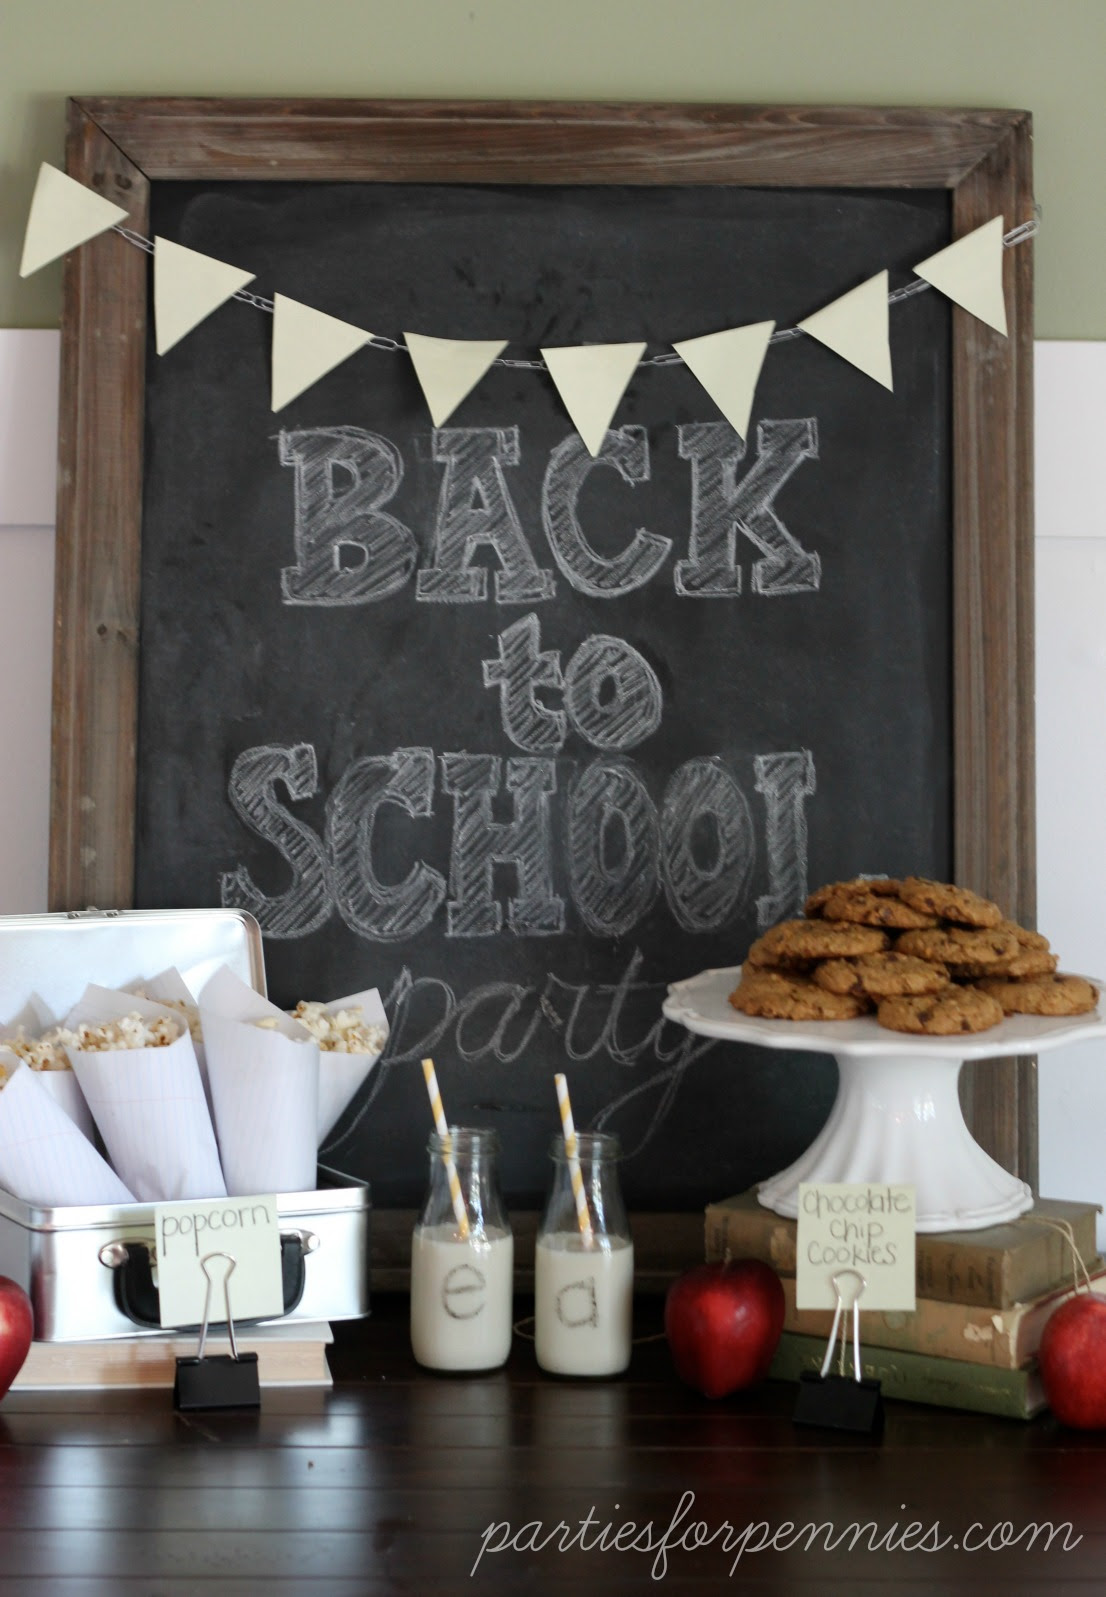 Back to School Party - Parties For Pennies